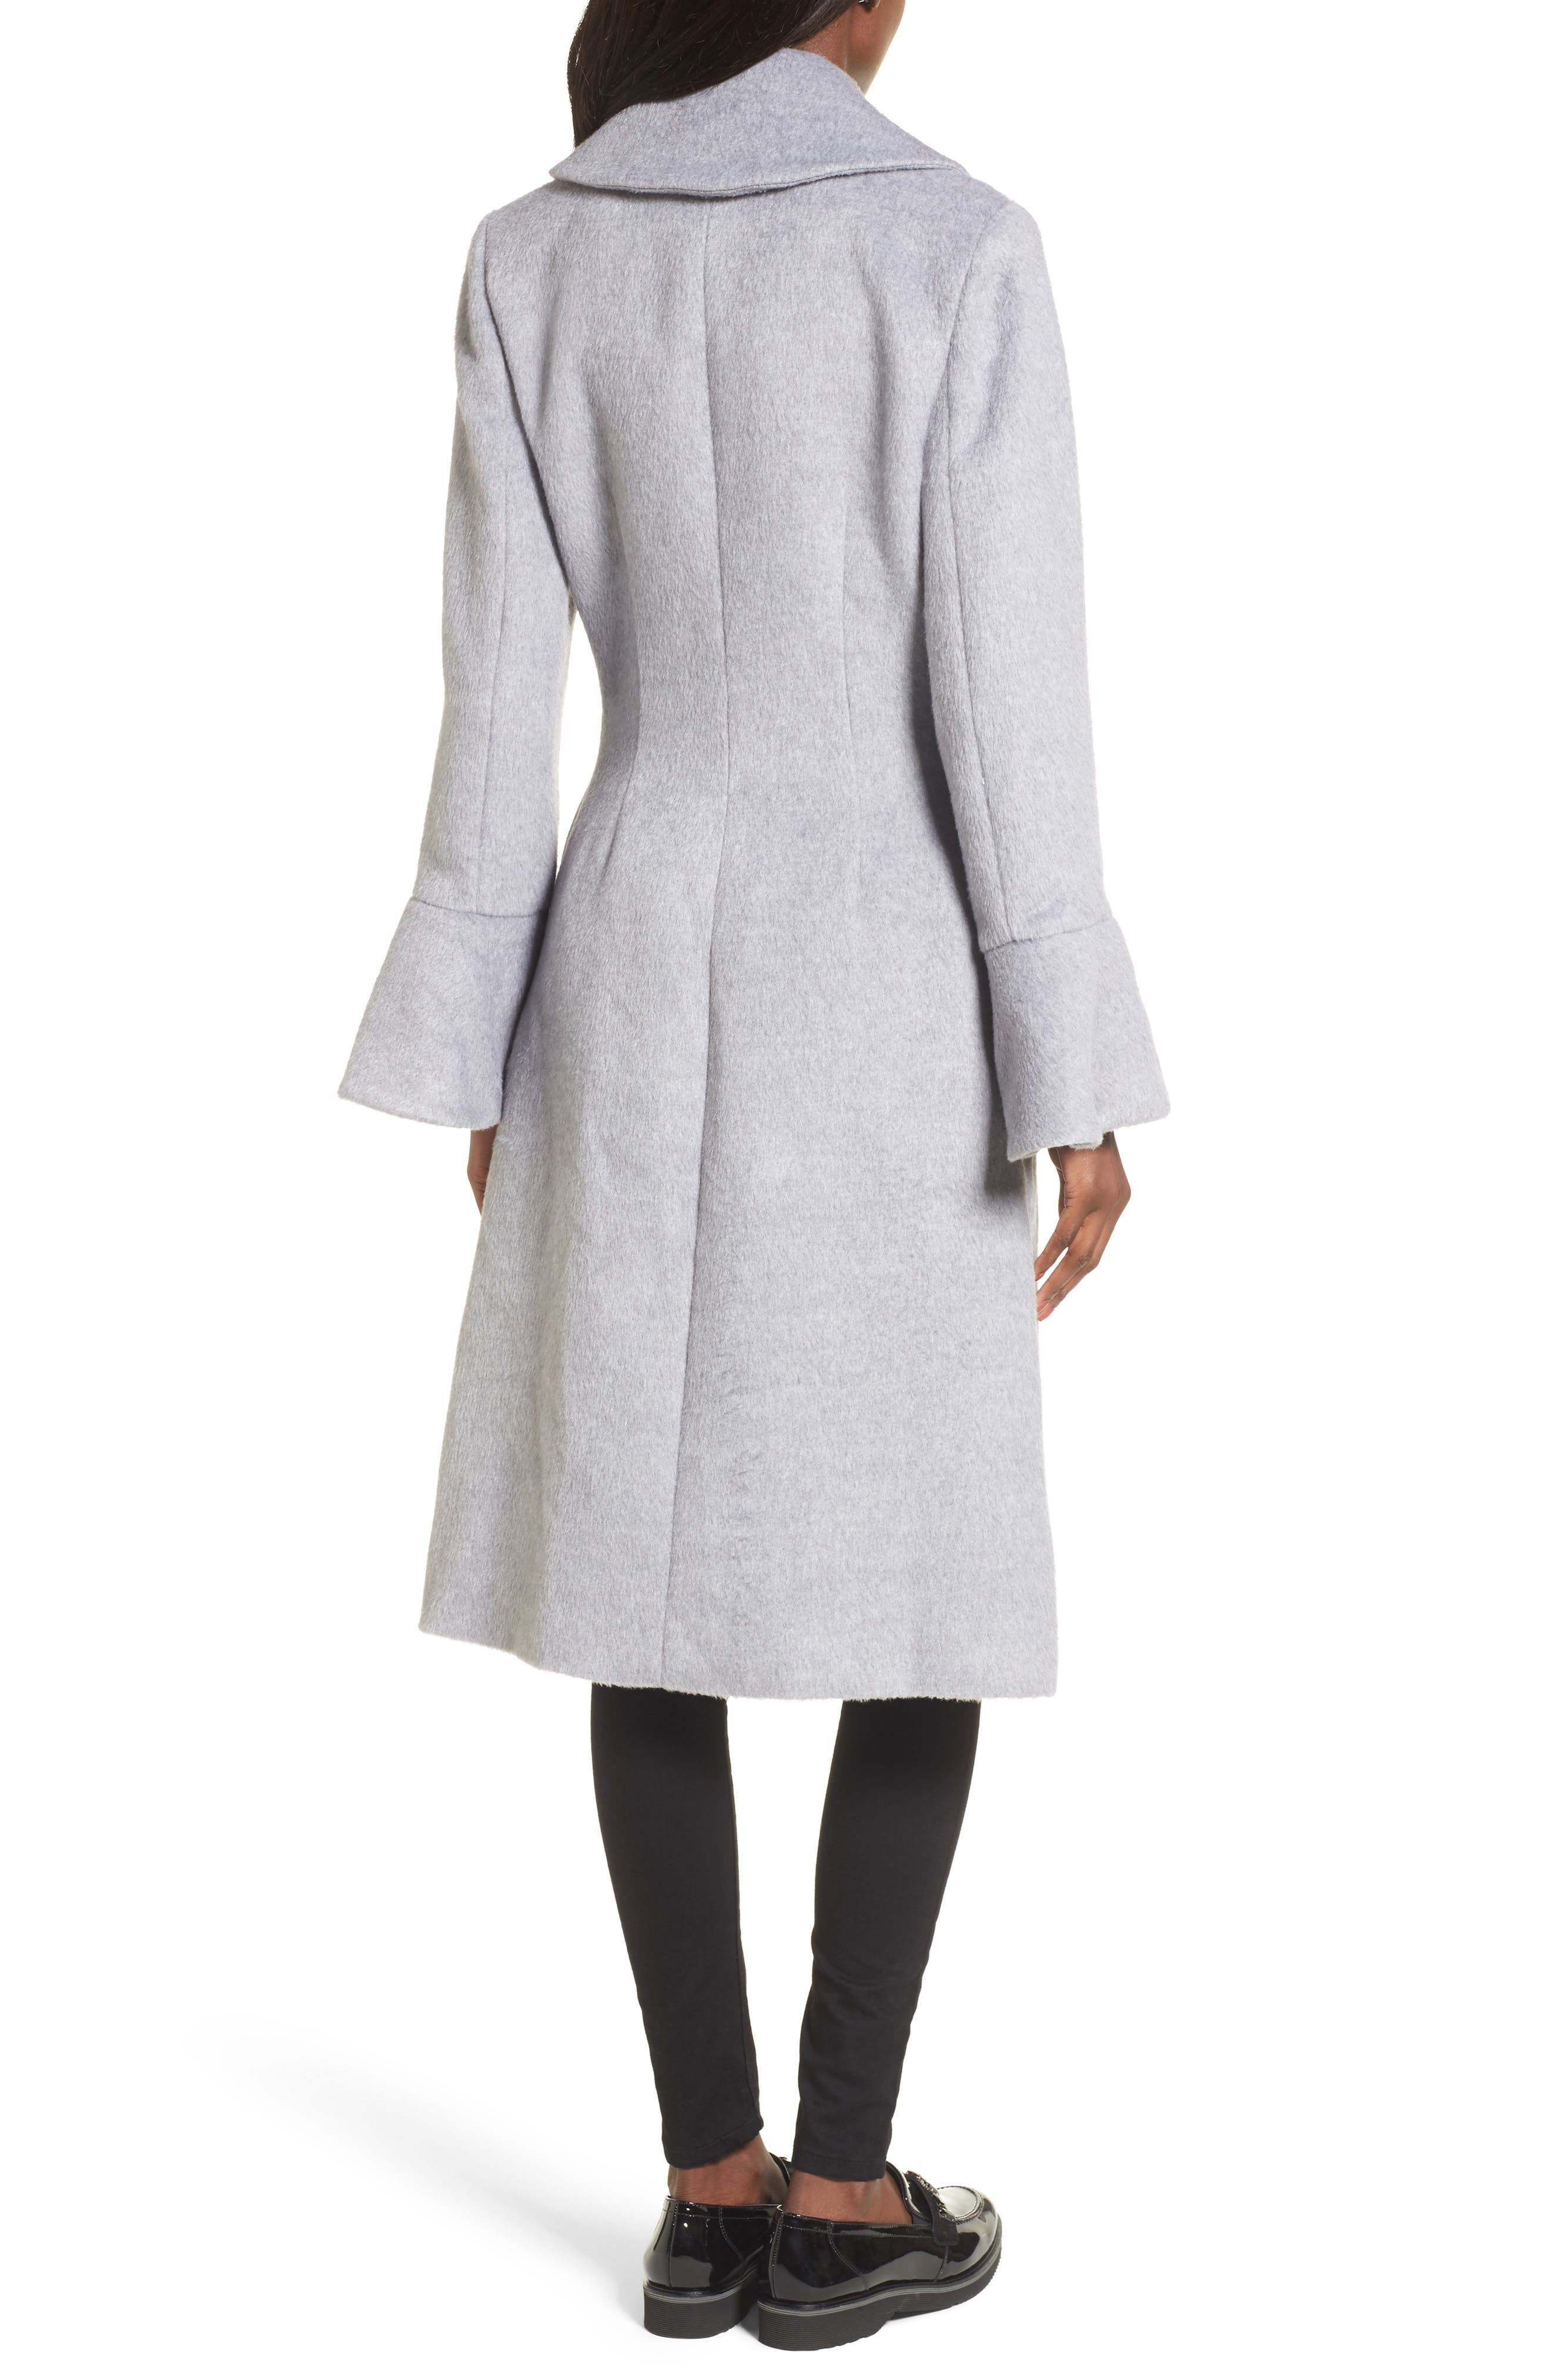 Intuition Water Repellent Coat,                             Alternate thumbnail 2, color,                             020